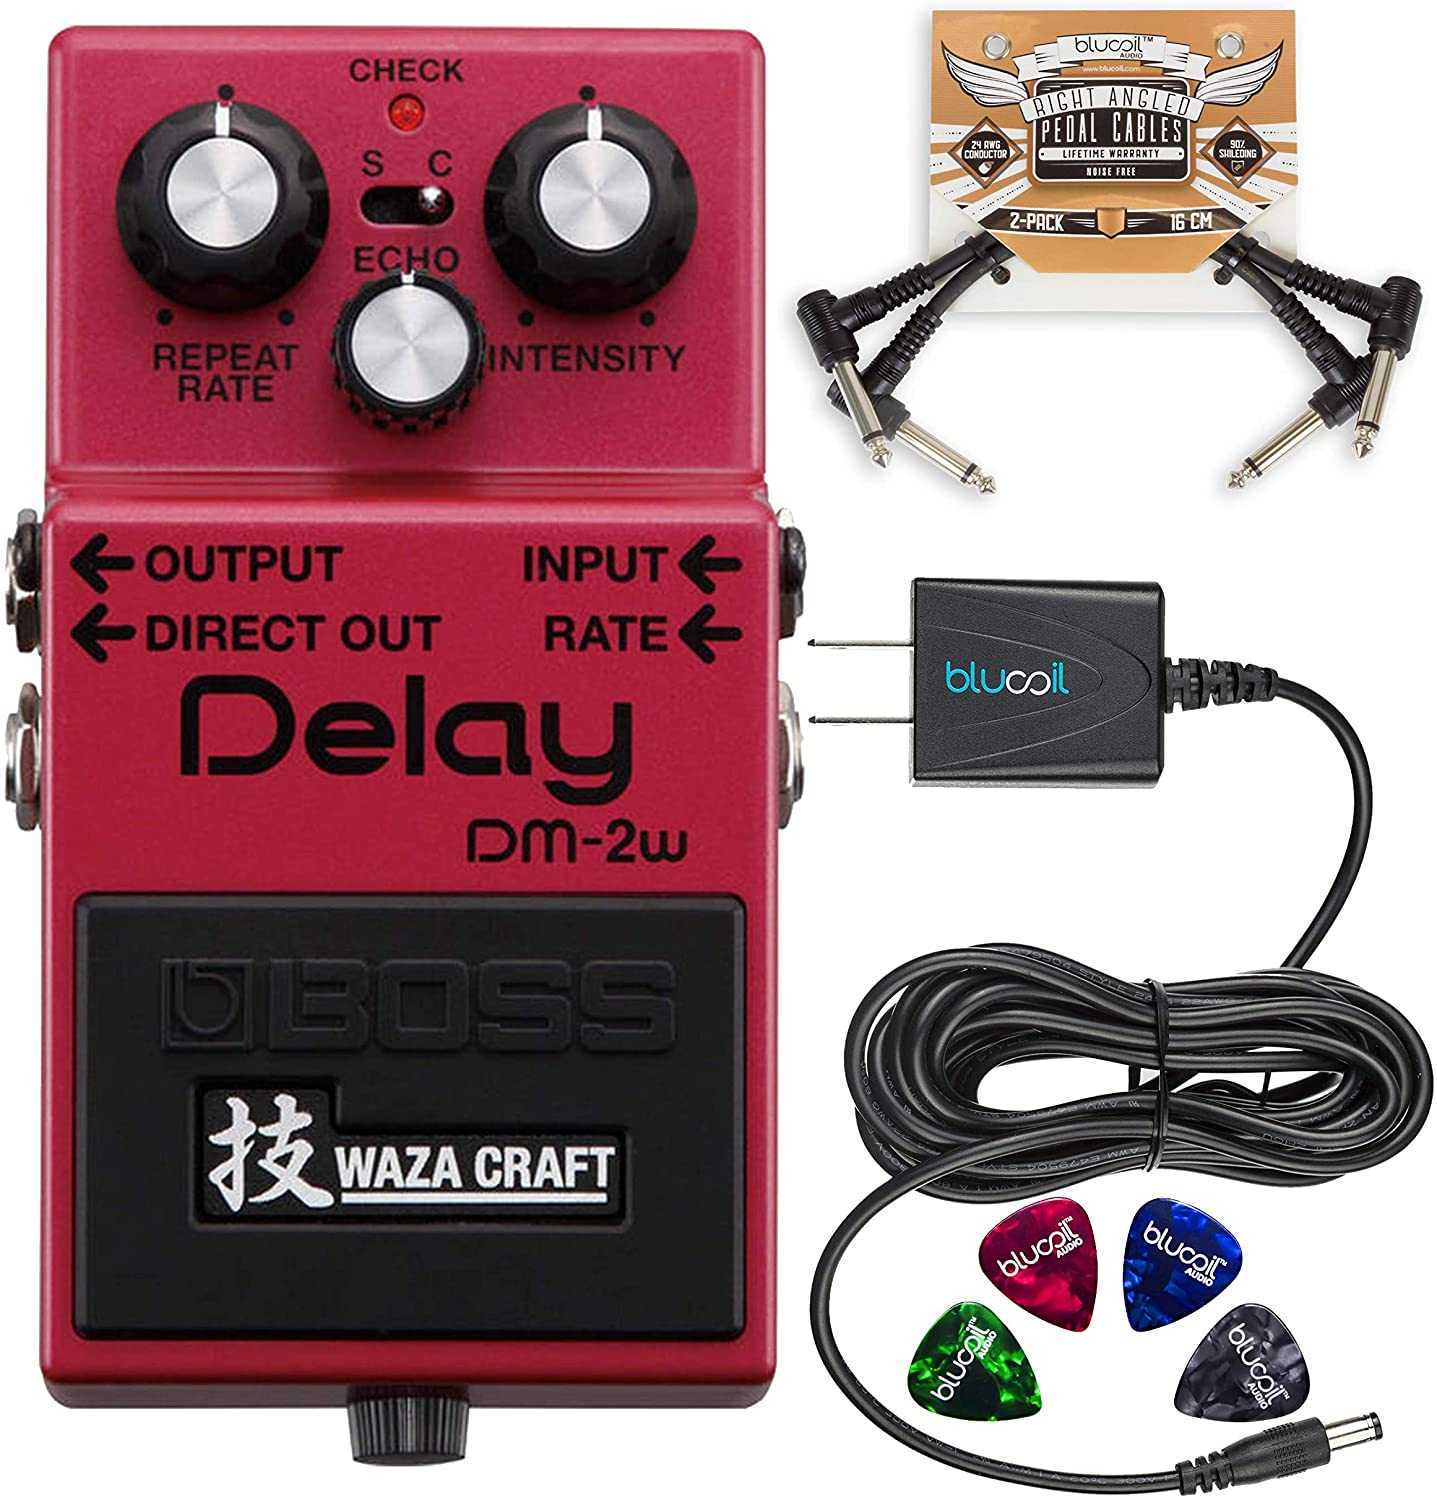 BOSS DM-2W Waza Craft Analog Delay Pedal Bundle with Blucoil Slim 9V Power Supply AC Adapter, 2-Pack of Pedal Patch Cables, and 4-Pack of Celluloid Guitar Picks